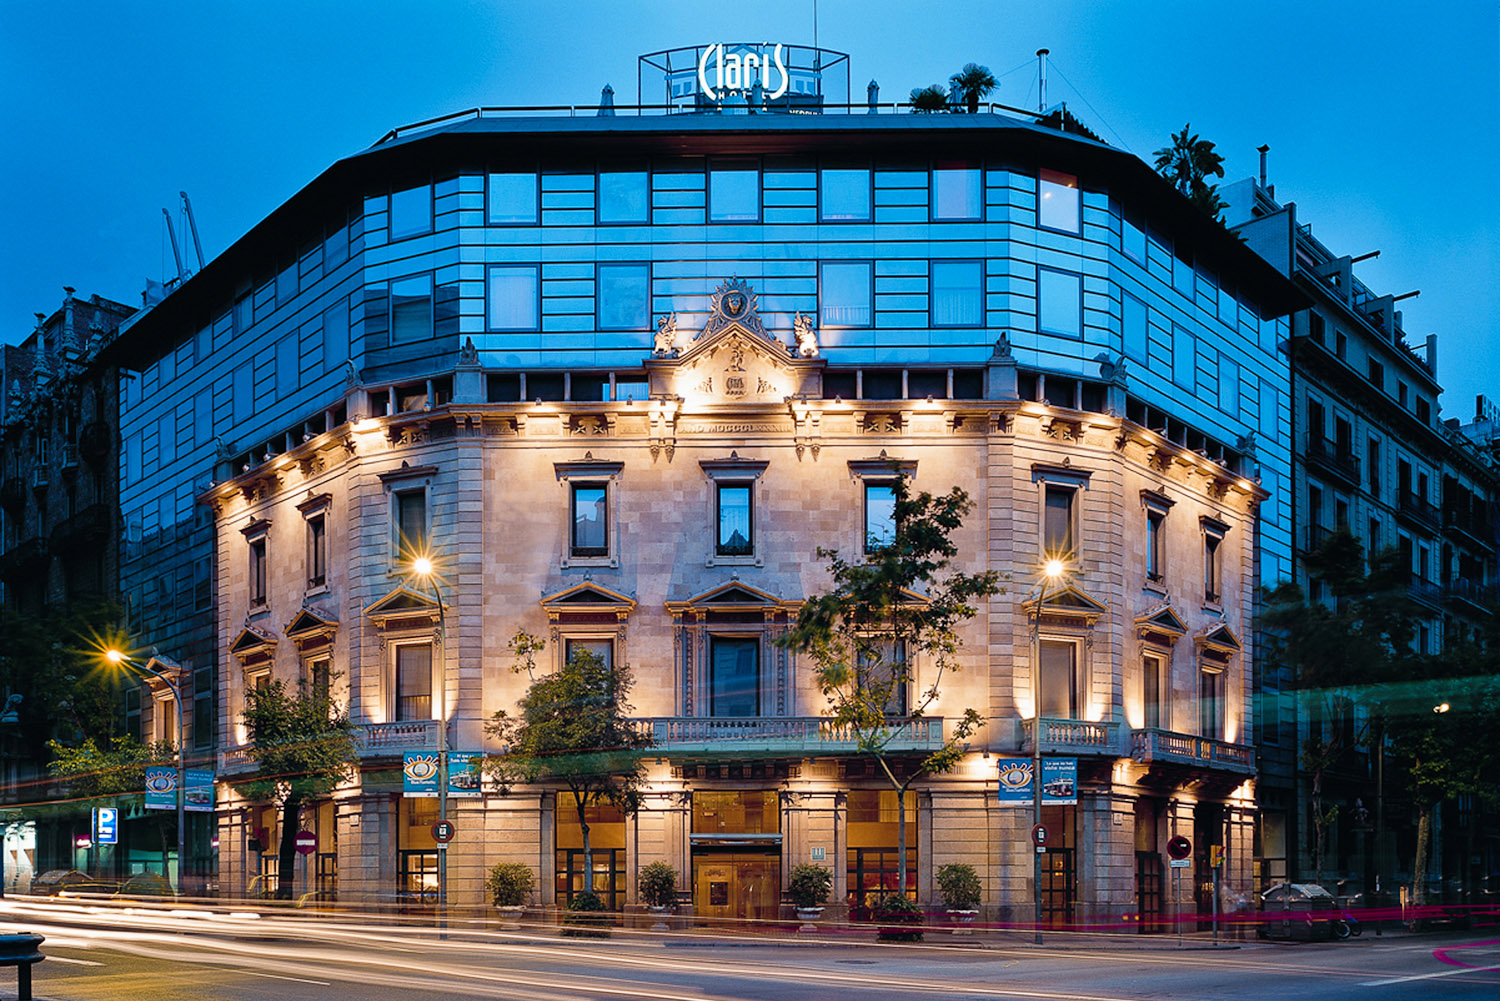 Hotel Claris in Barcelona, Spain.